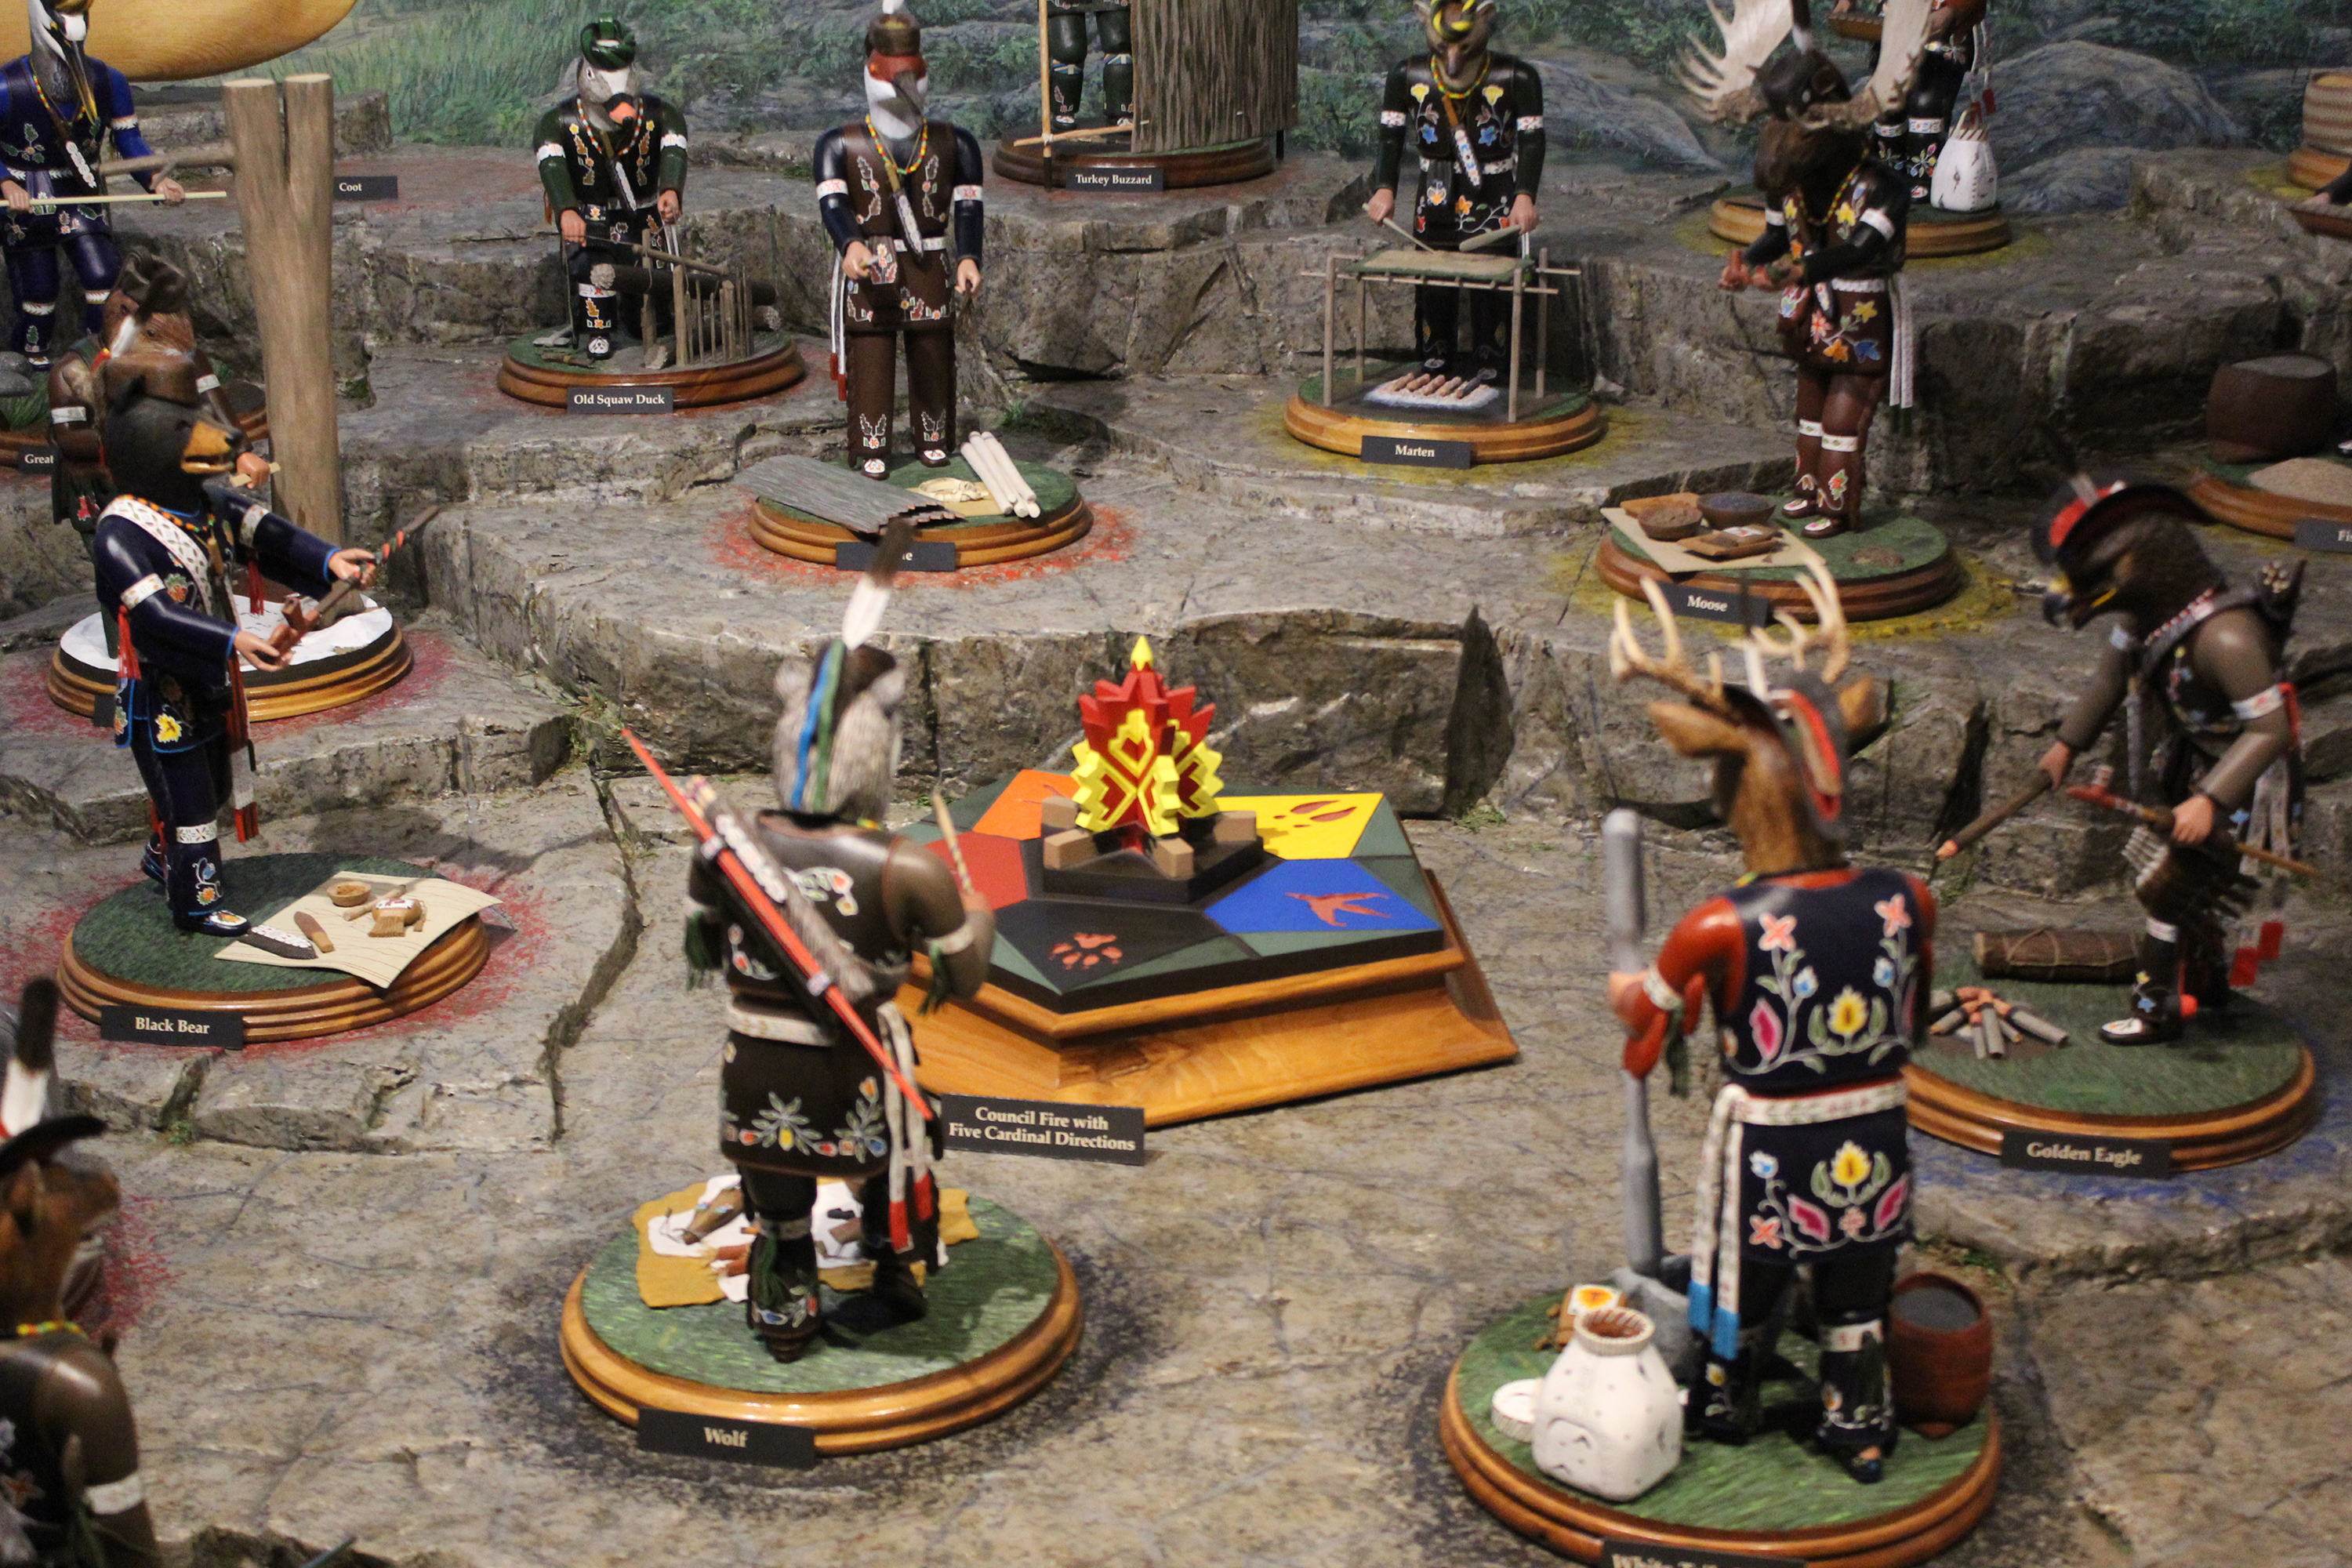 The council fire that many of the clan figures surround represents the five brothers or principal clans that make up the Menominee people.(Lee Pulaski   NEW Media)